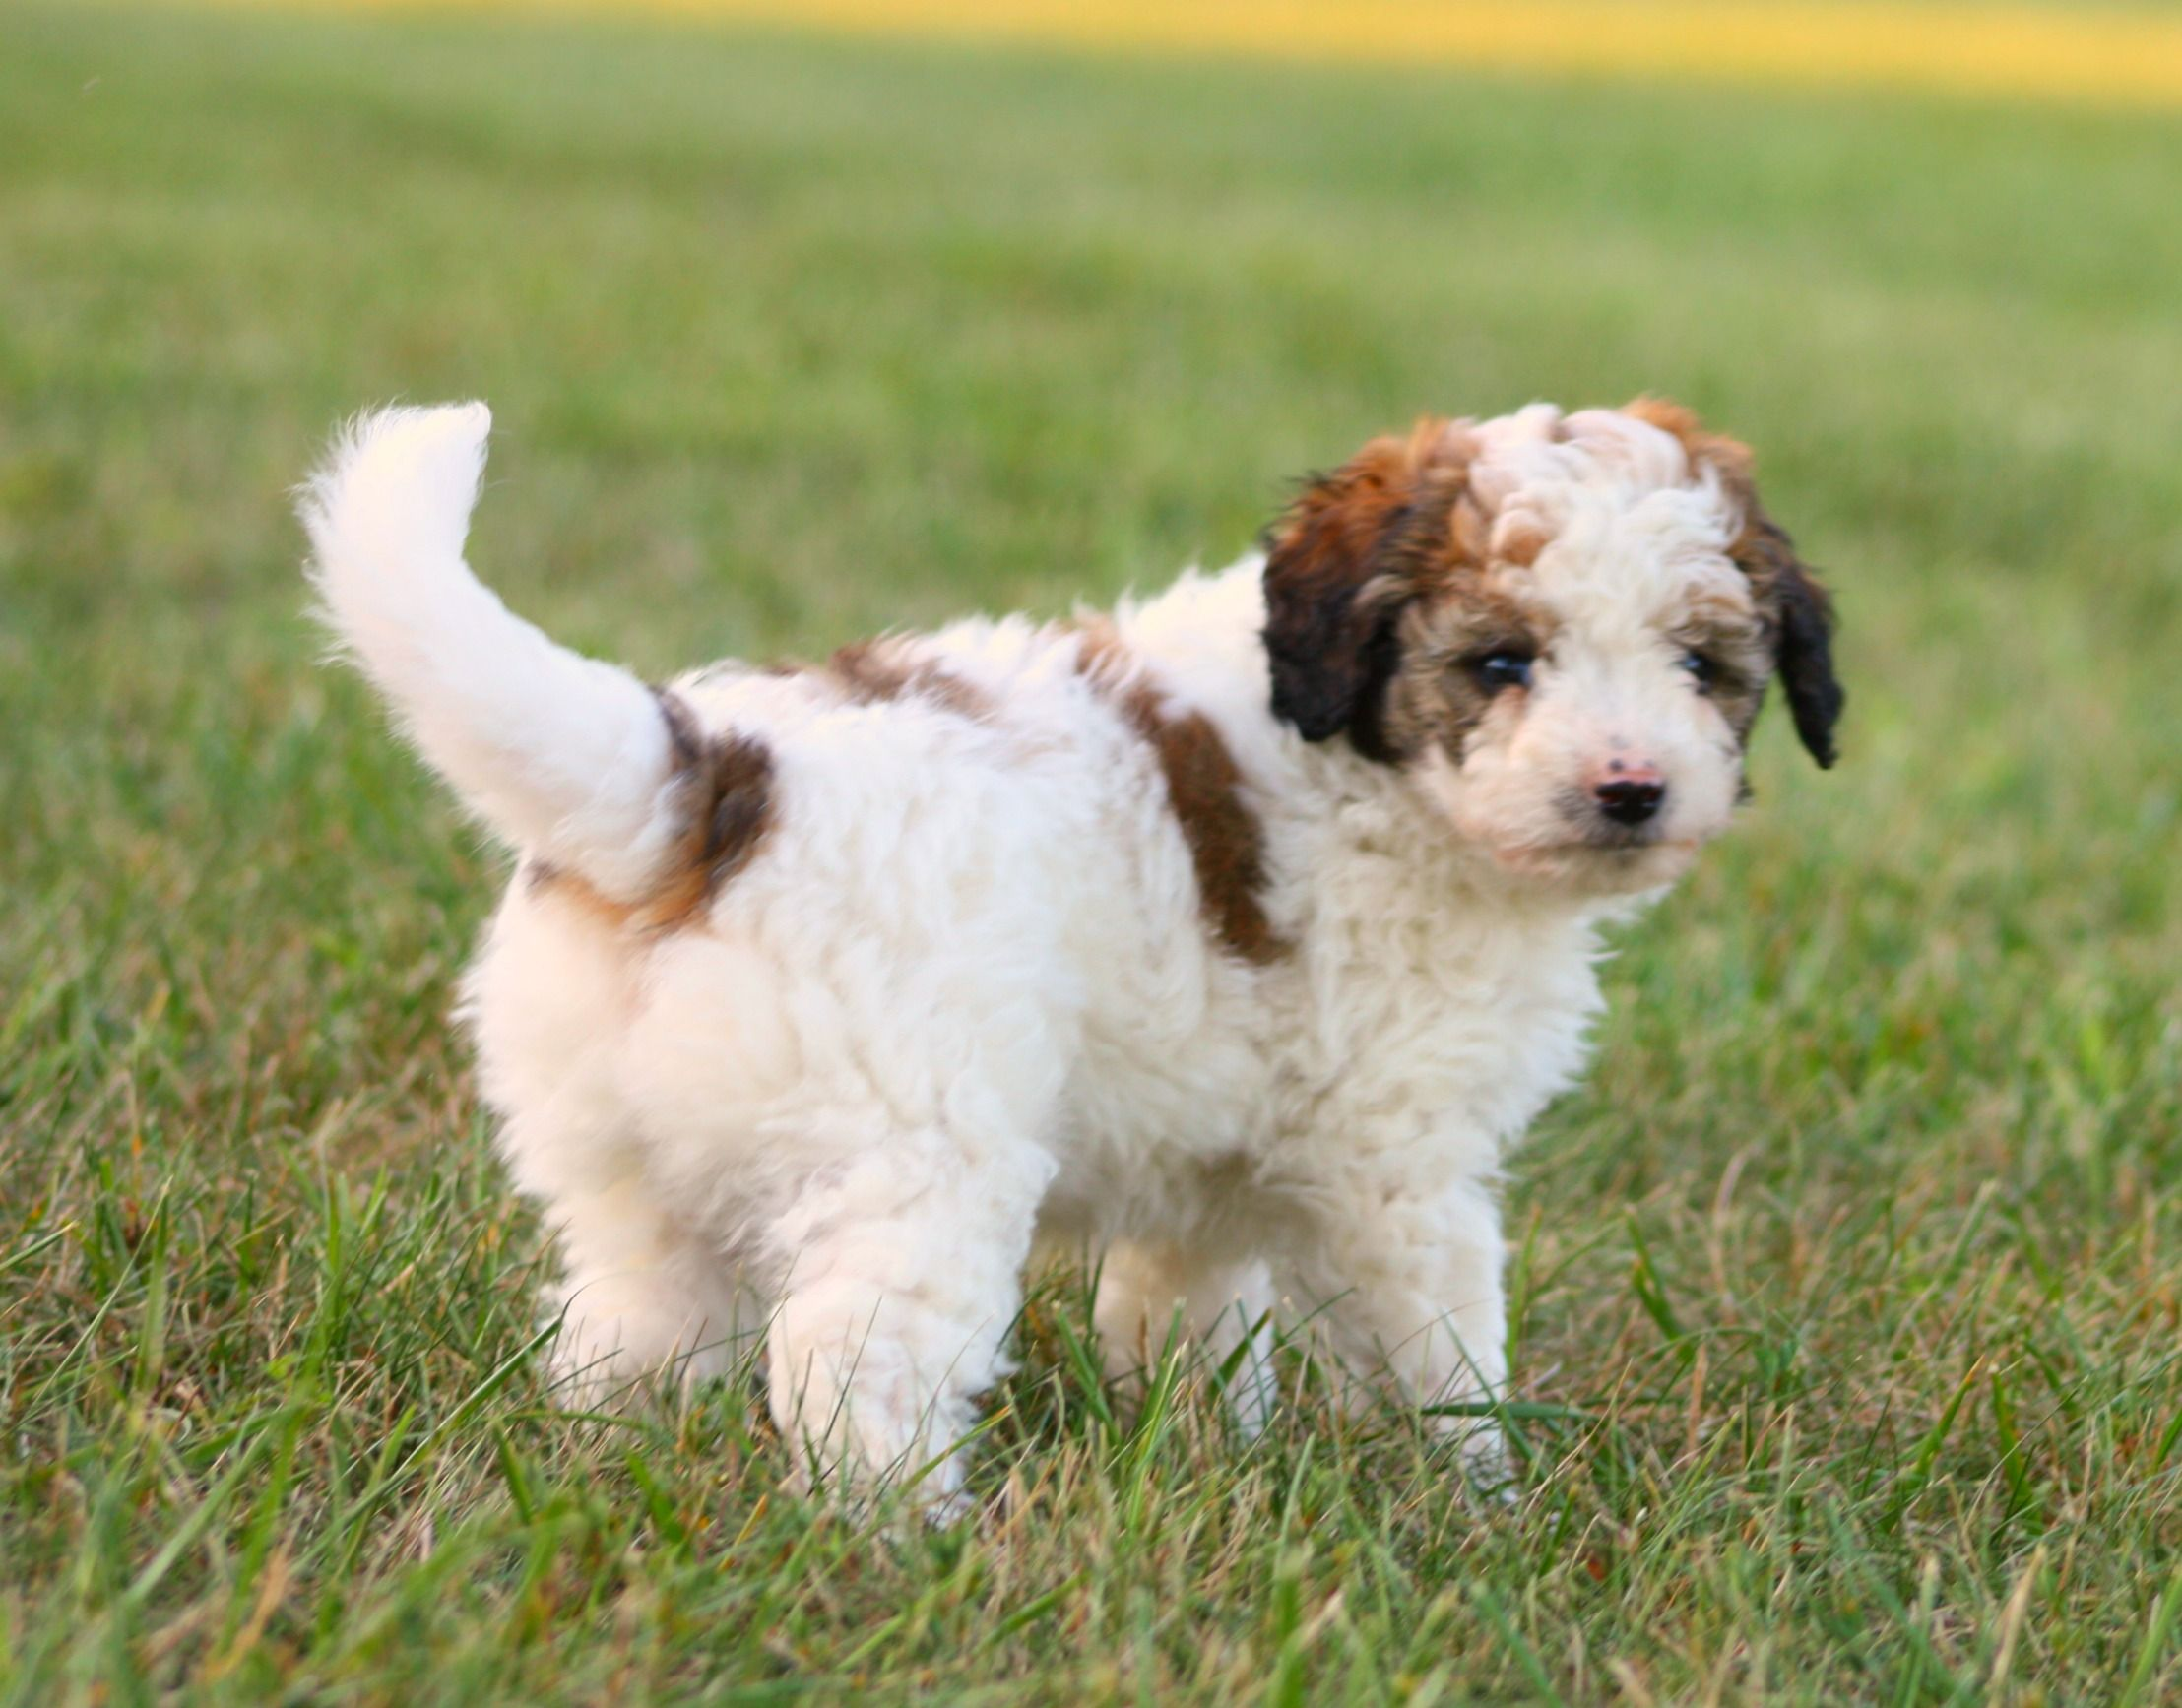 Male Aussie Doodle Banner Cute Dogs Breeds Cute Dogs Dog Breeds